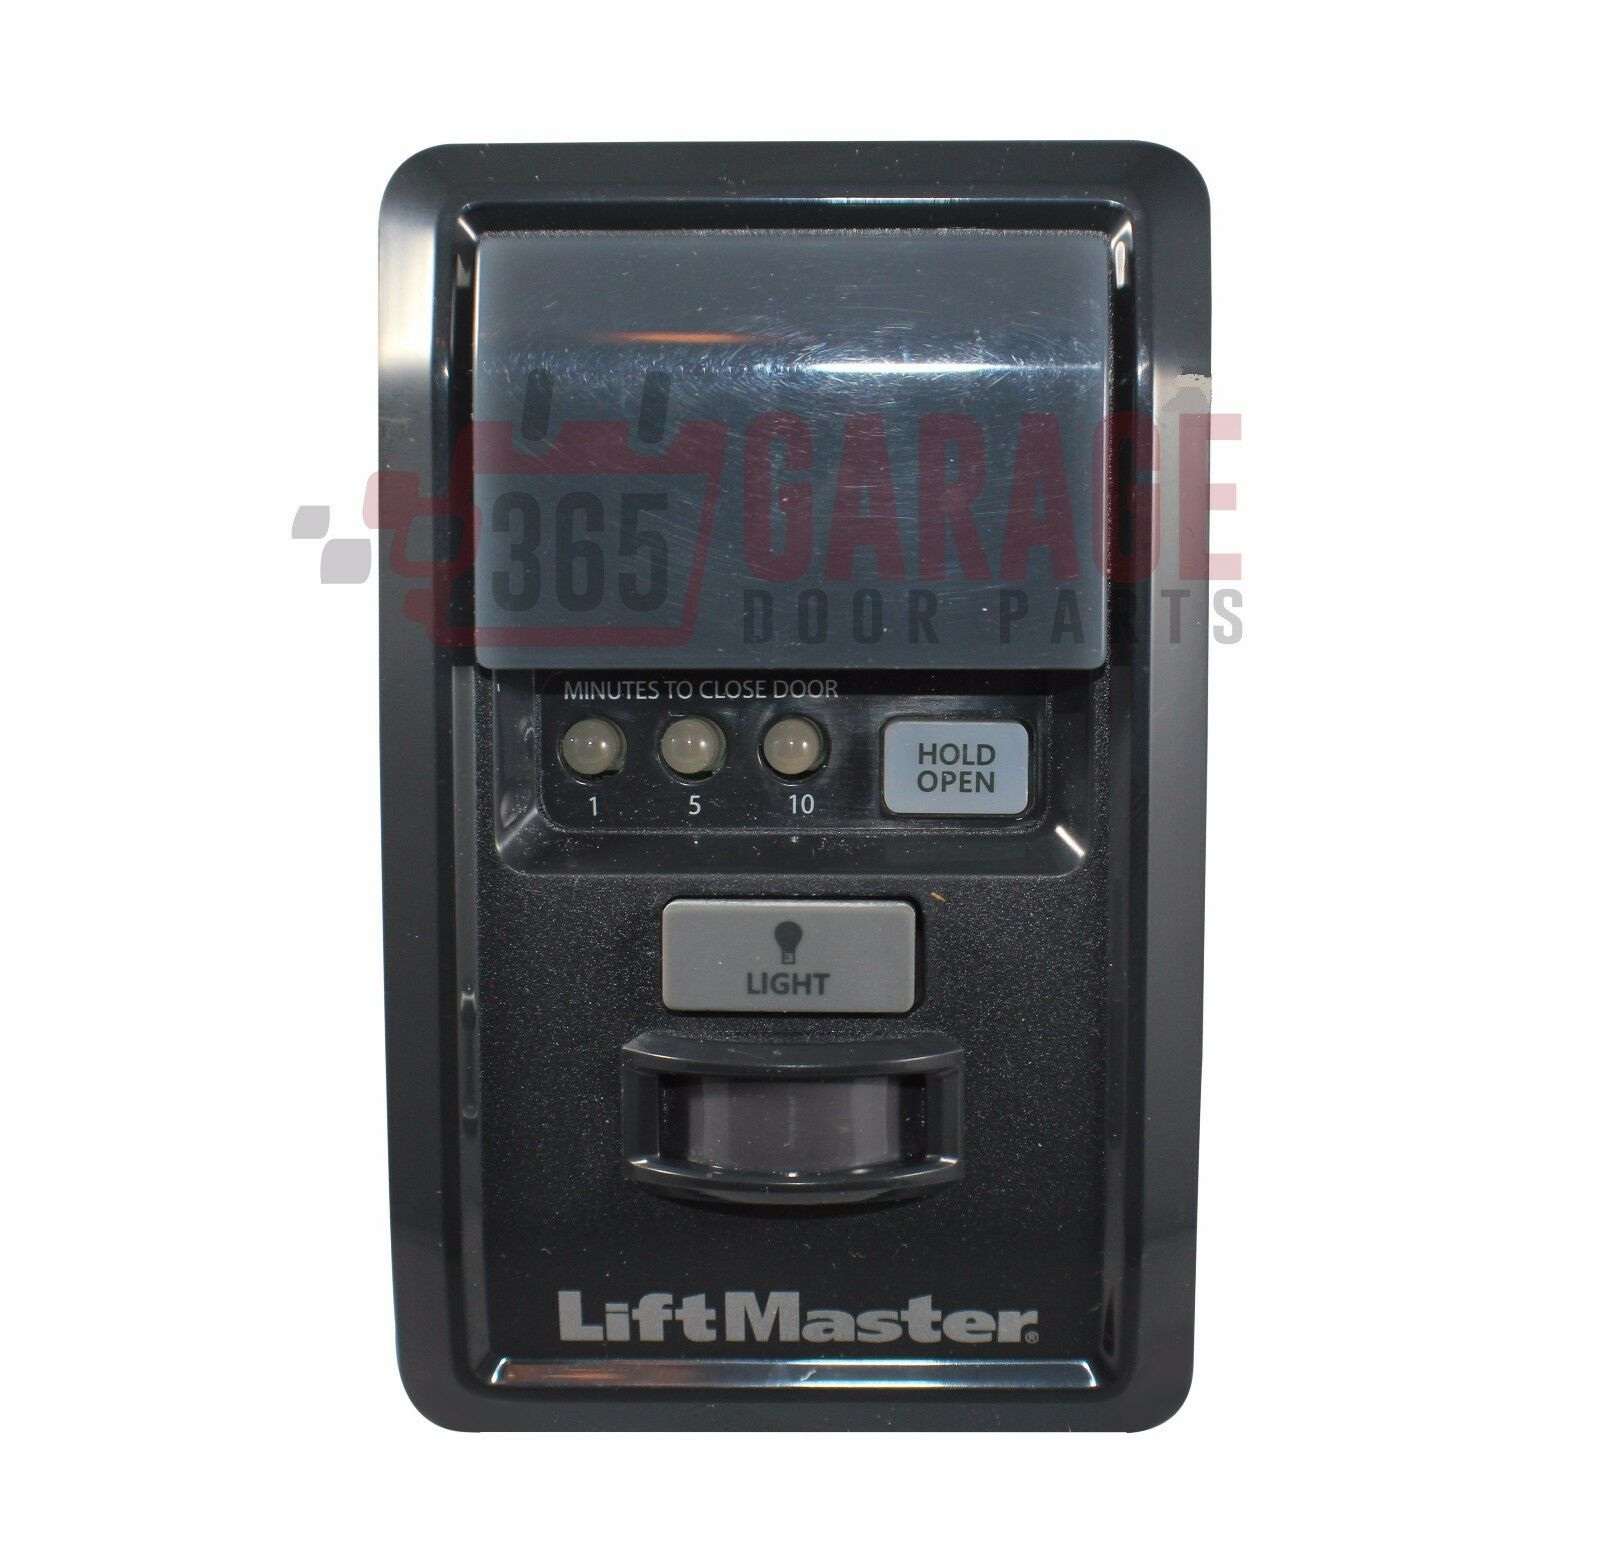 Liftmaster Garage Door Openers 881lmw Motion Detecting